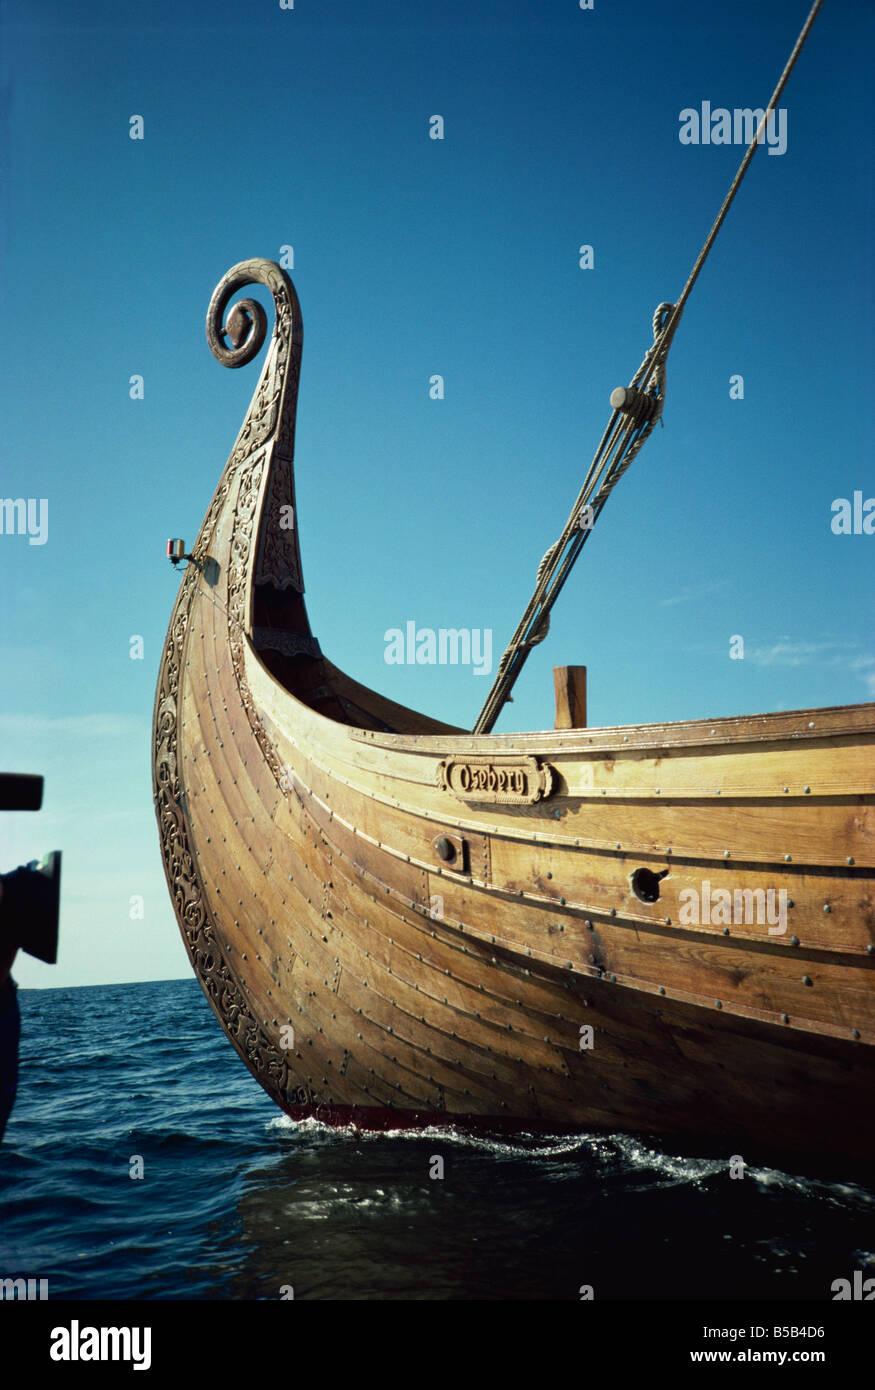 Replica of 9th century Viking ship Oseberg Norway Scandinavia Europe - Stock Image